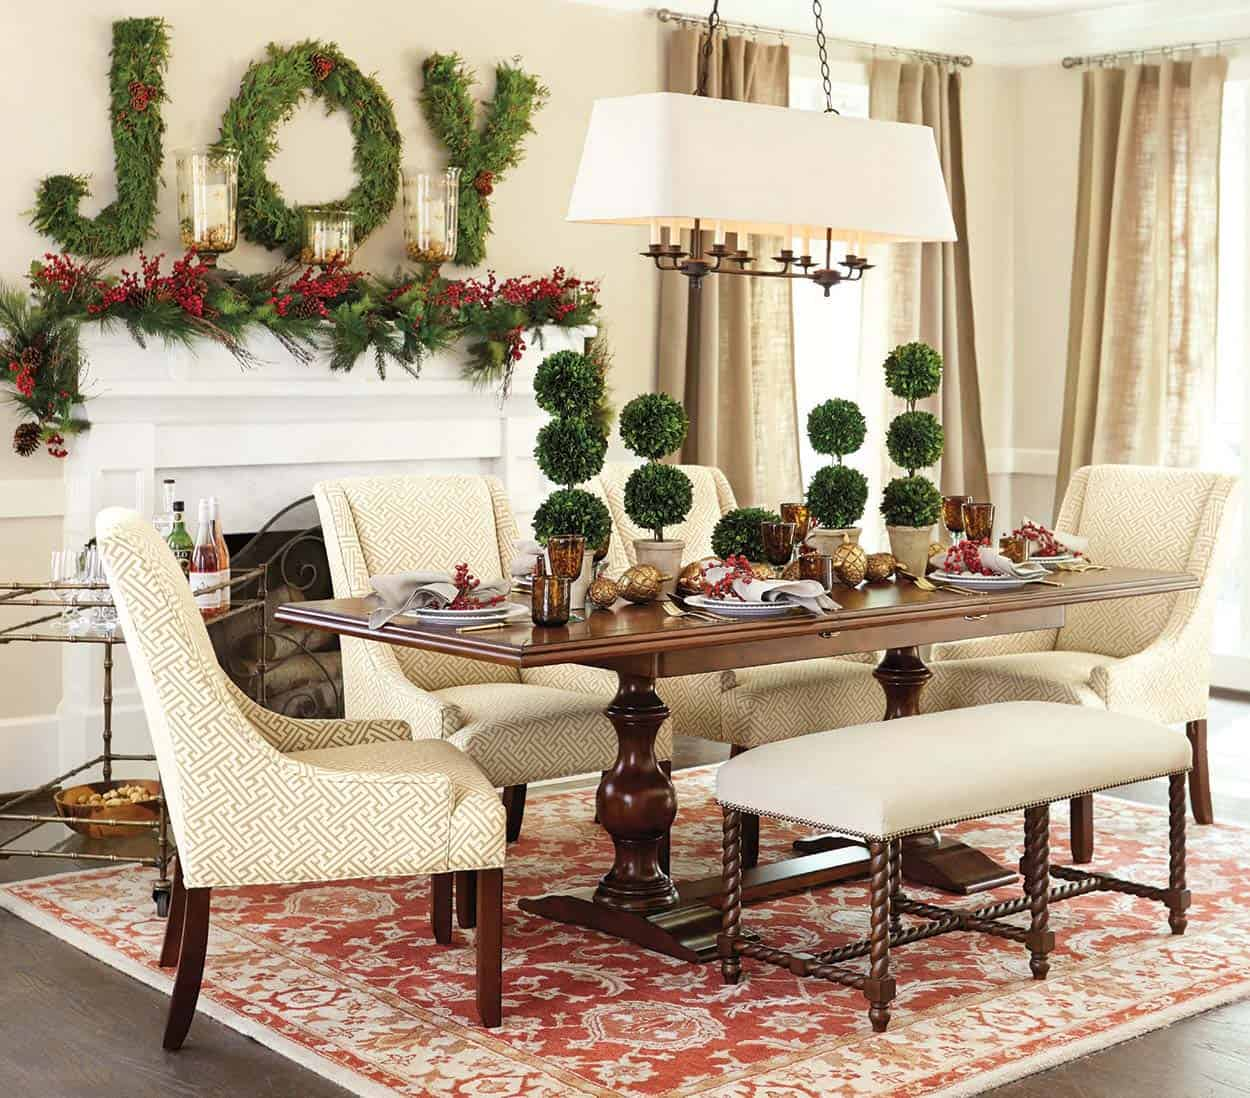 Rustic Interior Design Ideas: 40+ Fabulous Rustic-Country Christmas Decorating Ideas